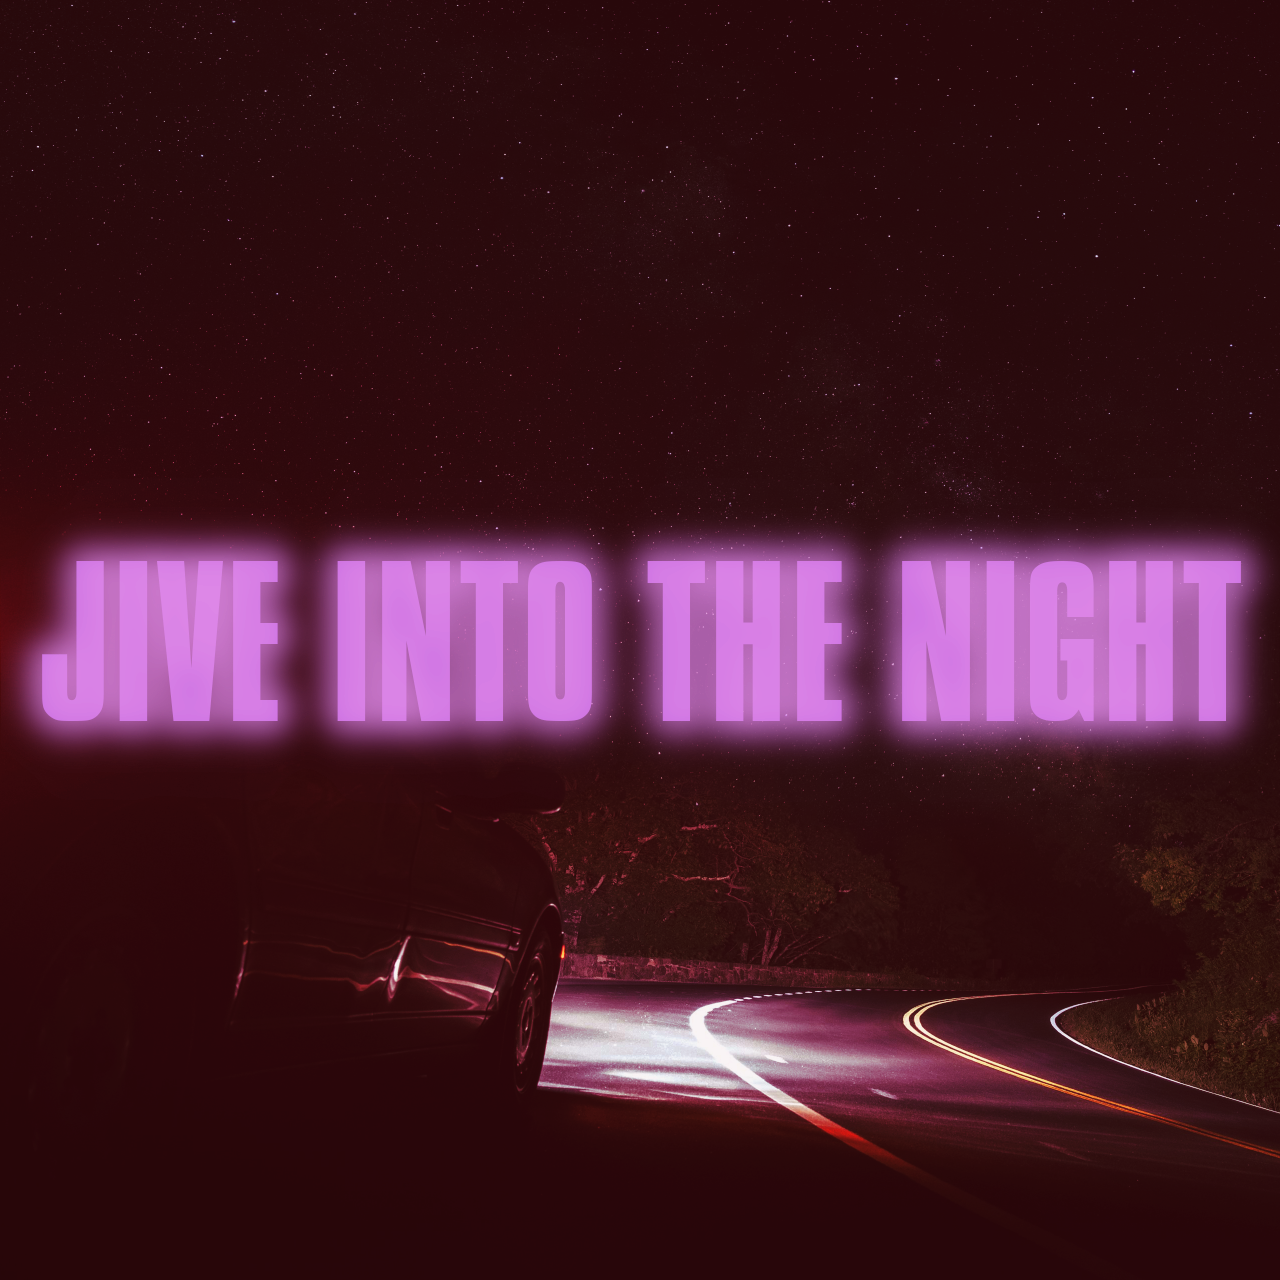 https://zenius-i-vanisher.com/simfiles/ZIv%20Freestyle%20Showcase%202020/JIVE%20INTO%20THE%20NIGHT/JIVE%20INTO%20THE%20NIGHT-jacket.png